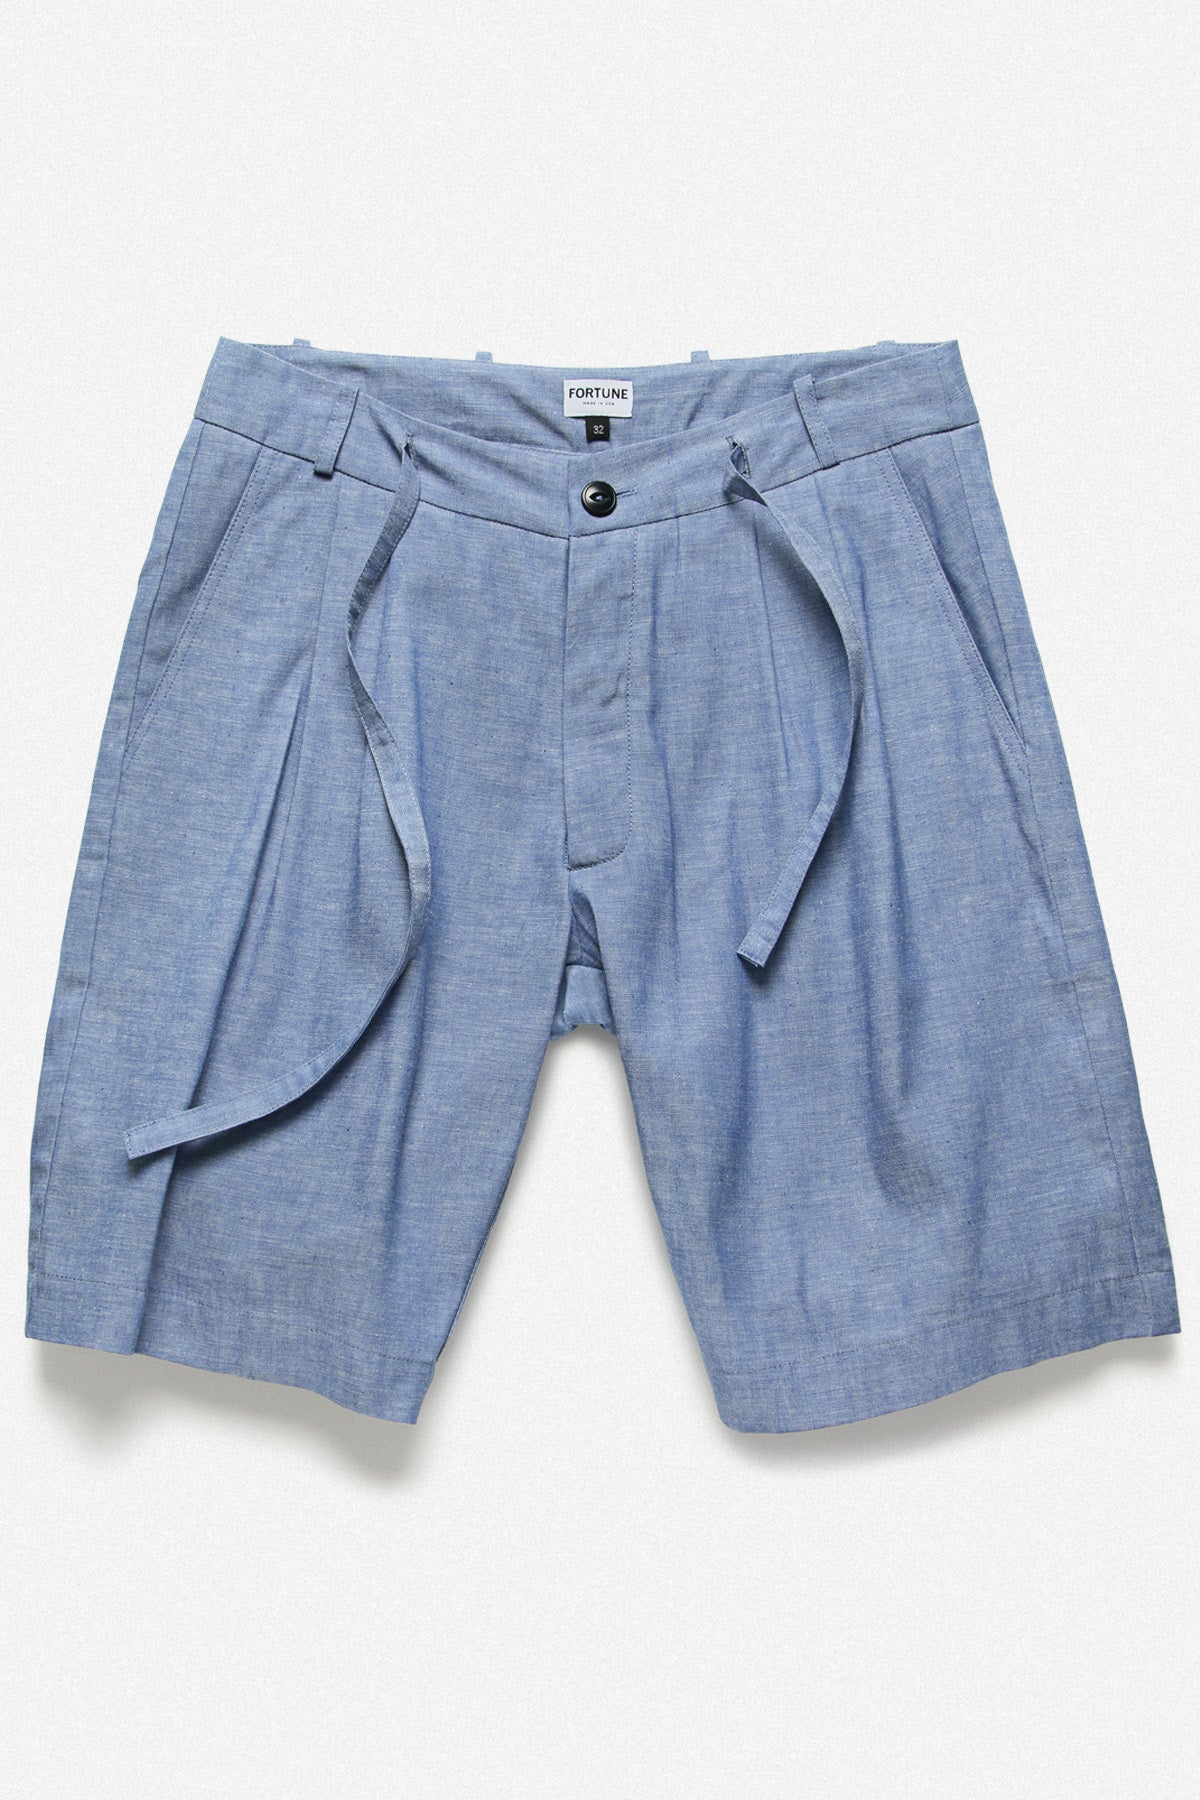 PLEATED SHORT IN BLUE CHAMBRAY - Fortune Goods